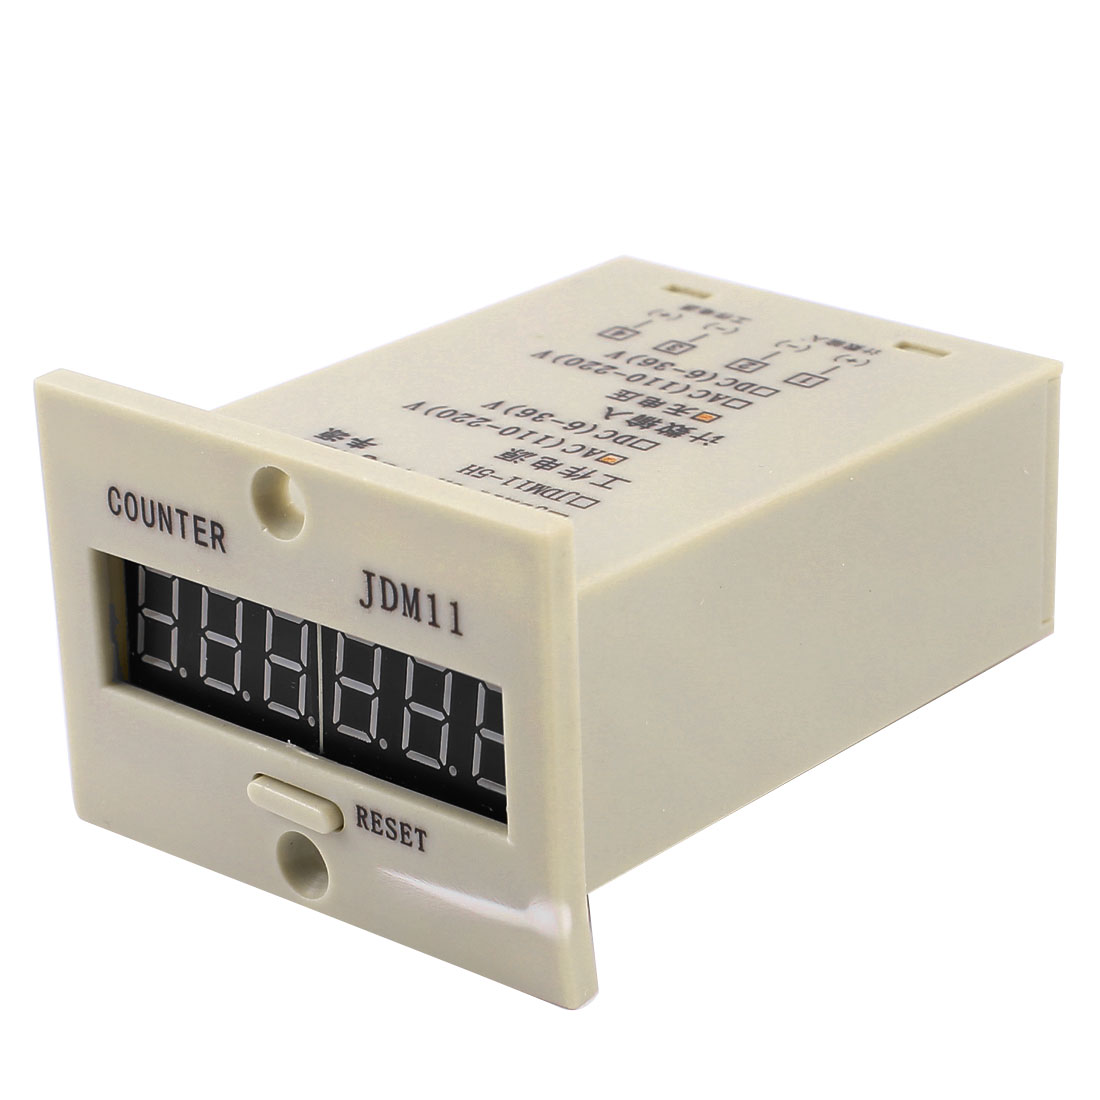 JDM11-6H Resettable 6 Digits LED Display Electric Digital Counter AC110-220V